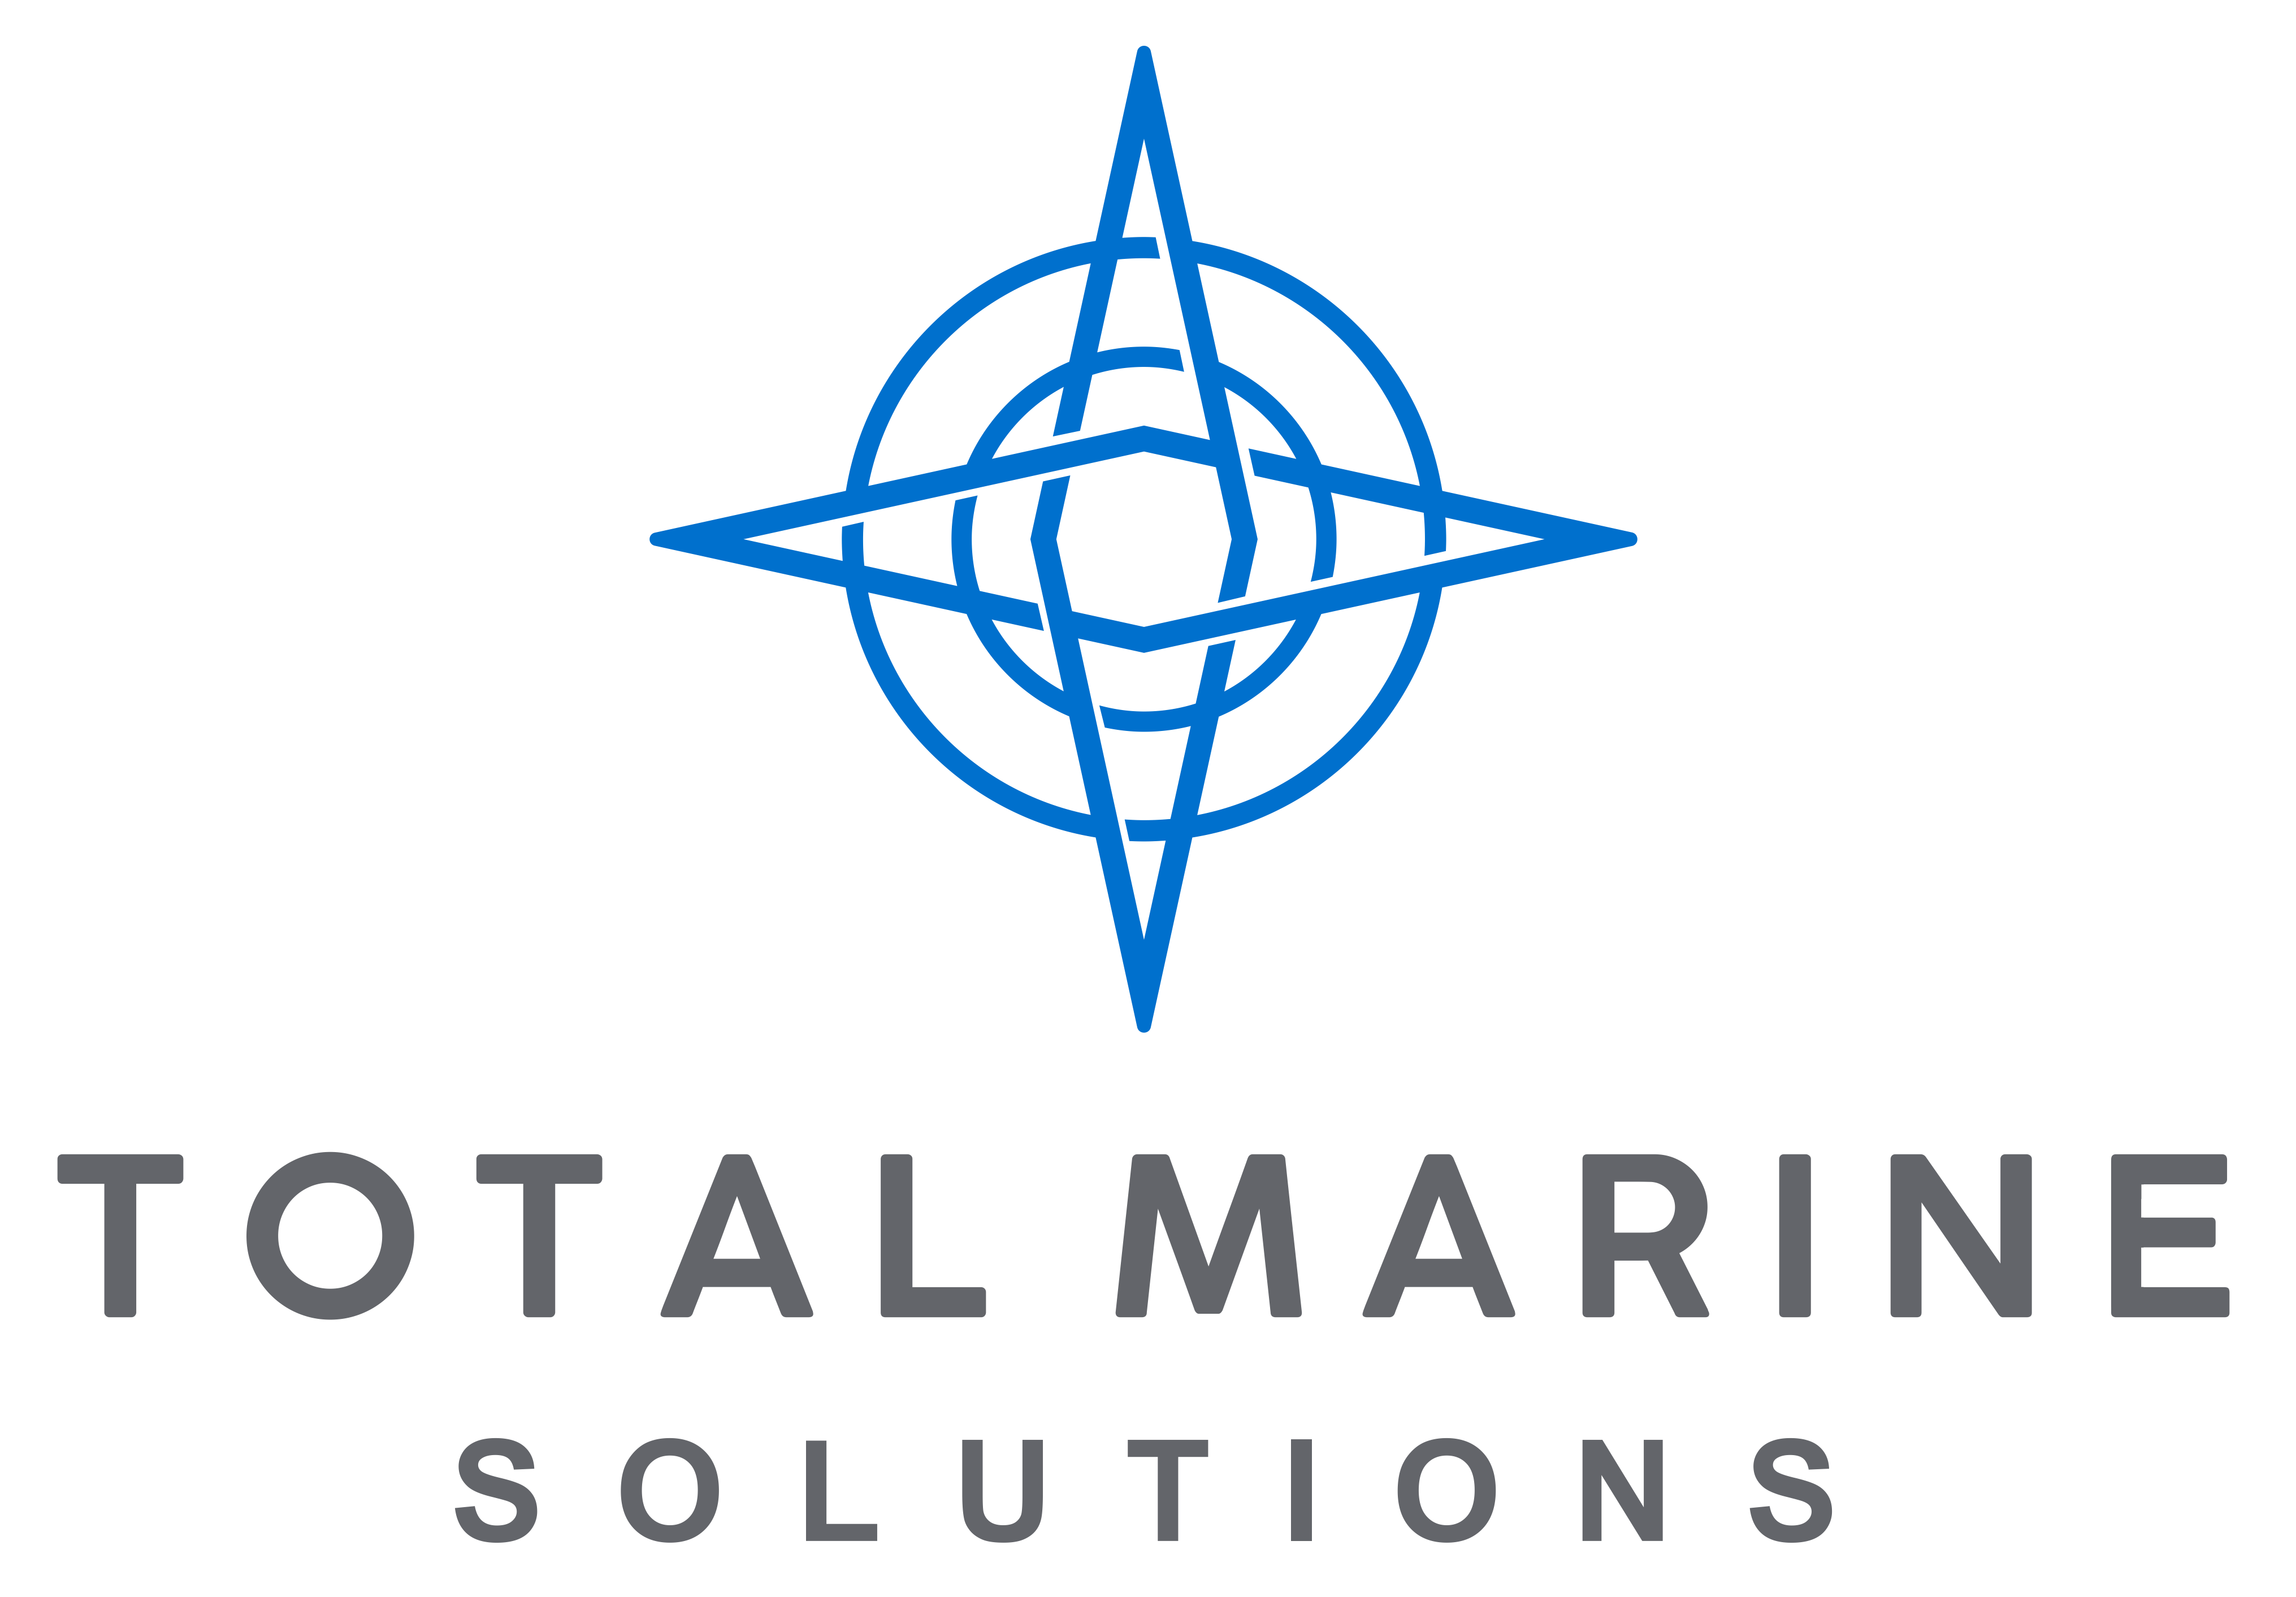 Total Marine Solutions